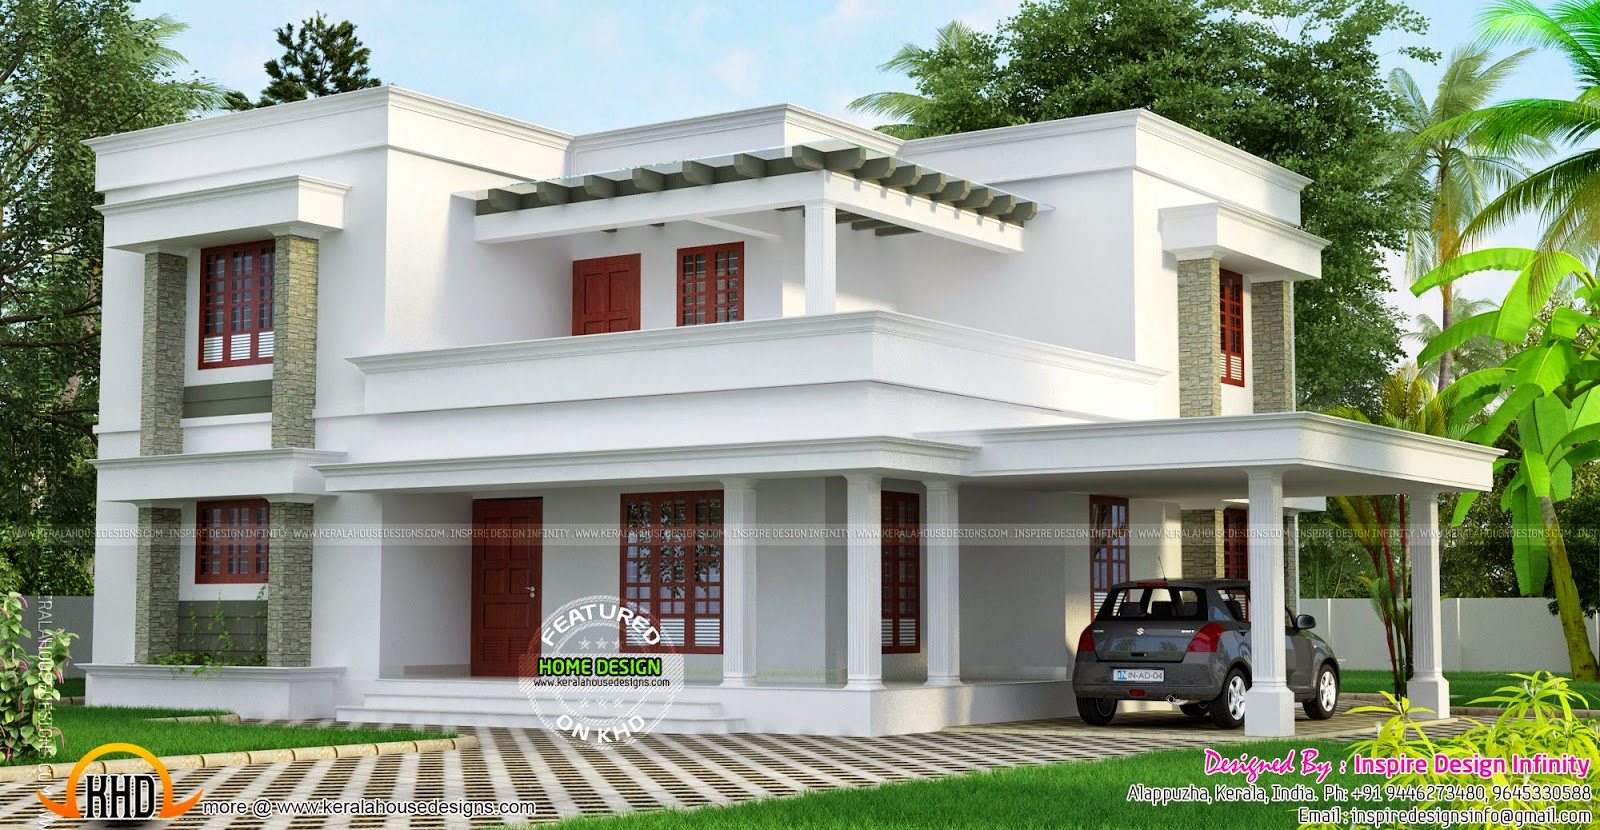 Simple Beautiful House further Front Home Design At Cute Elevation Indian House Adorable together with 2012 08 01 archive likewise Botanica Home Large Open Plan Living Area Designed Metricon besides Modern Apartment Decor With Minimalist And Natural Neutral Color Schemes. on open floor plans from kitchen to living room colors